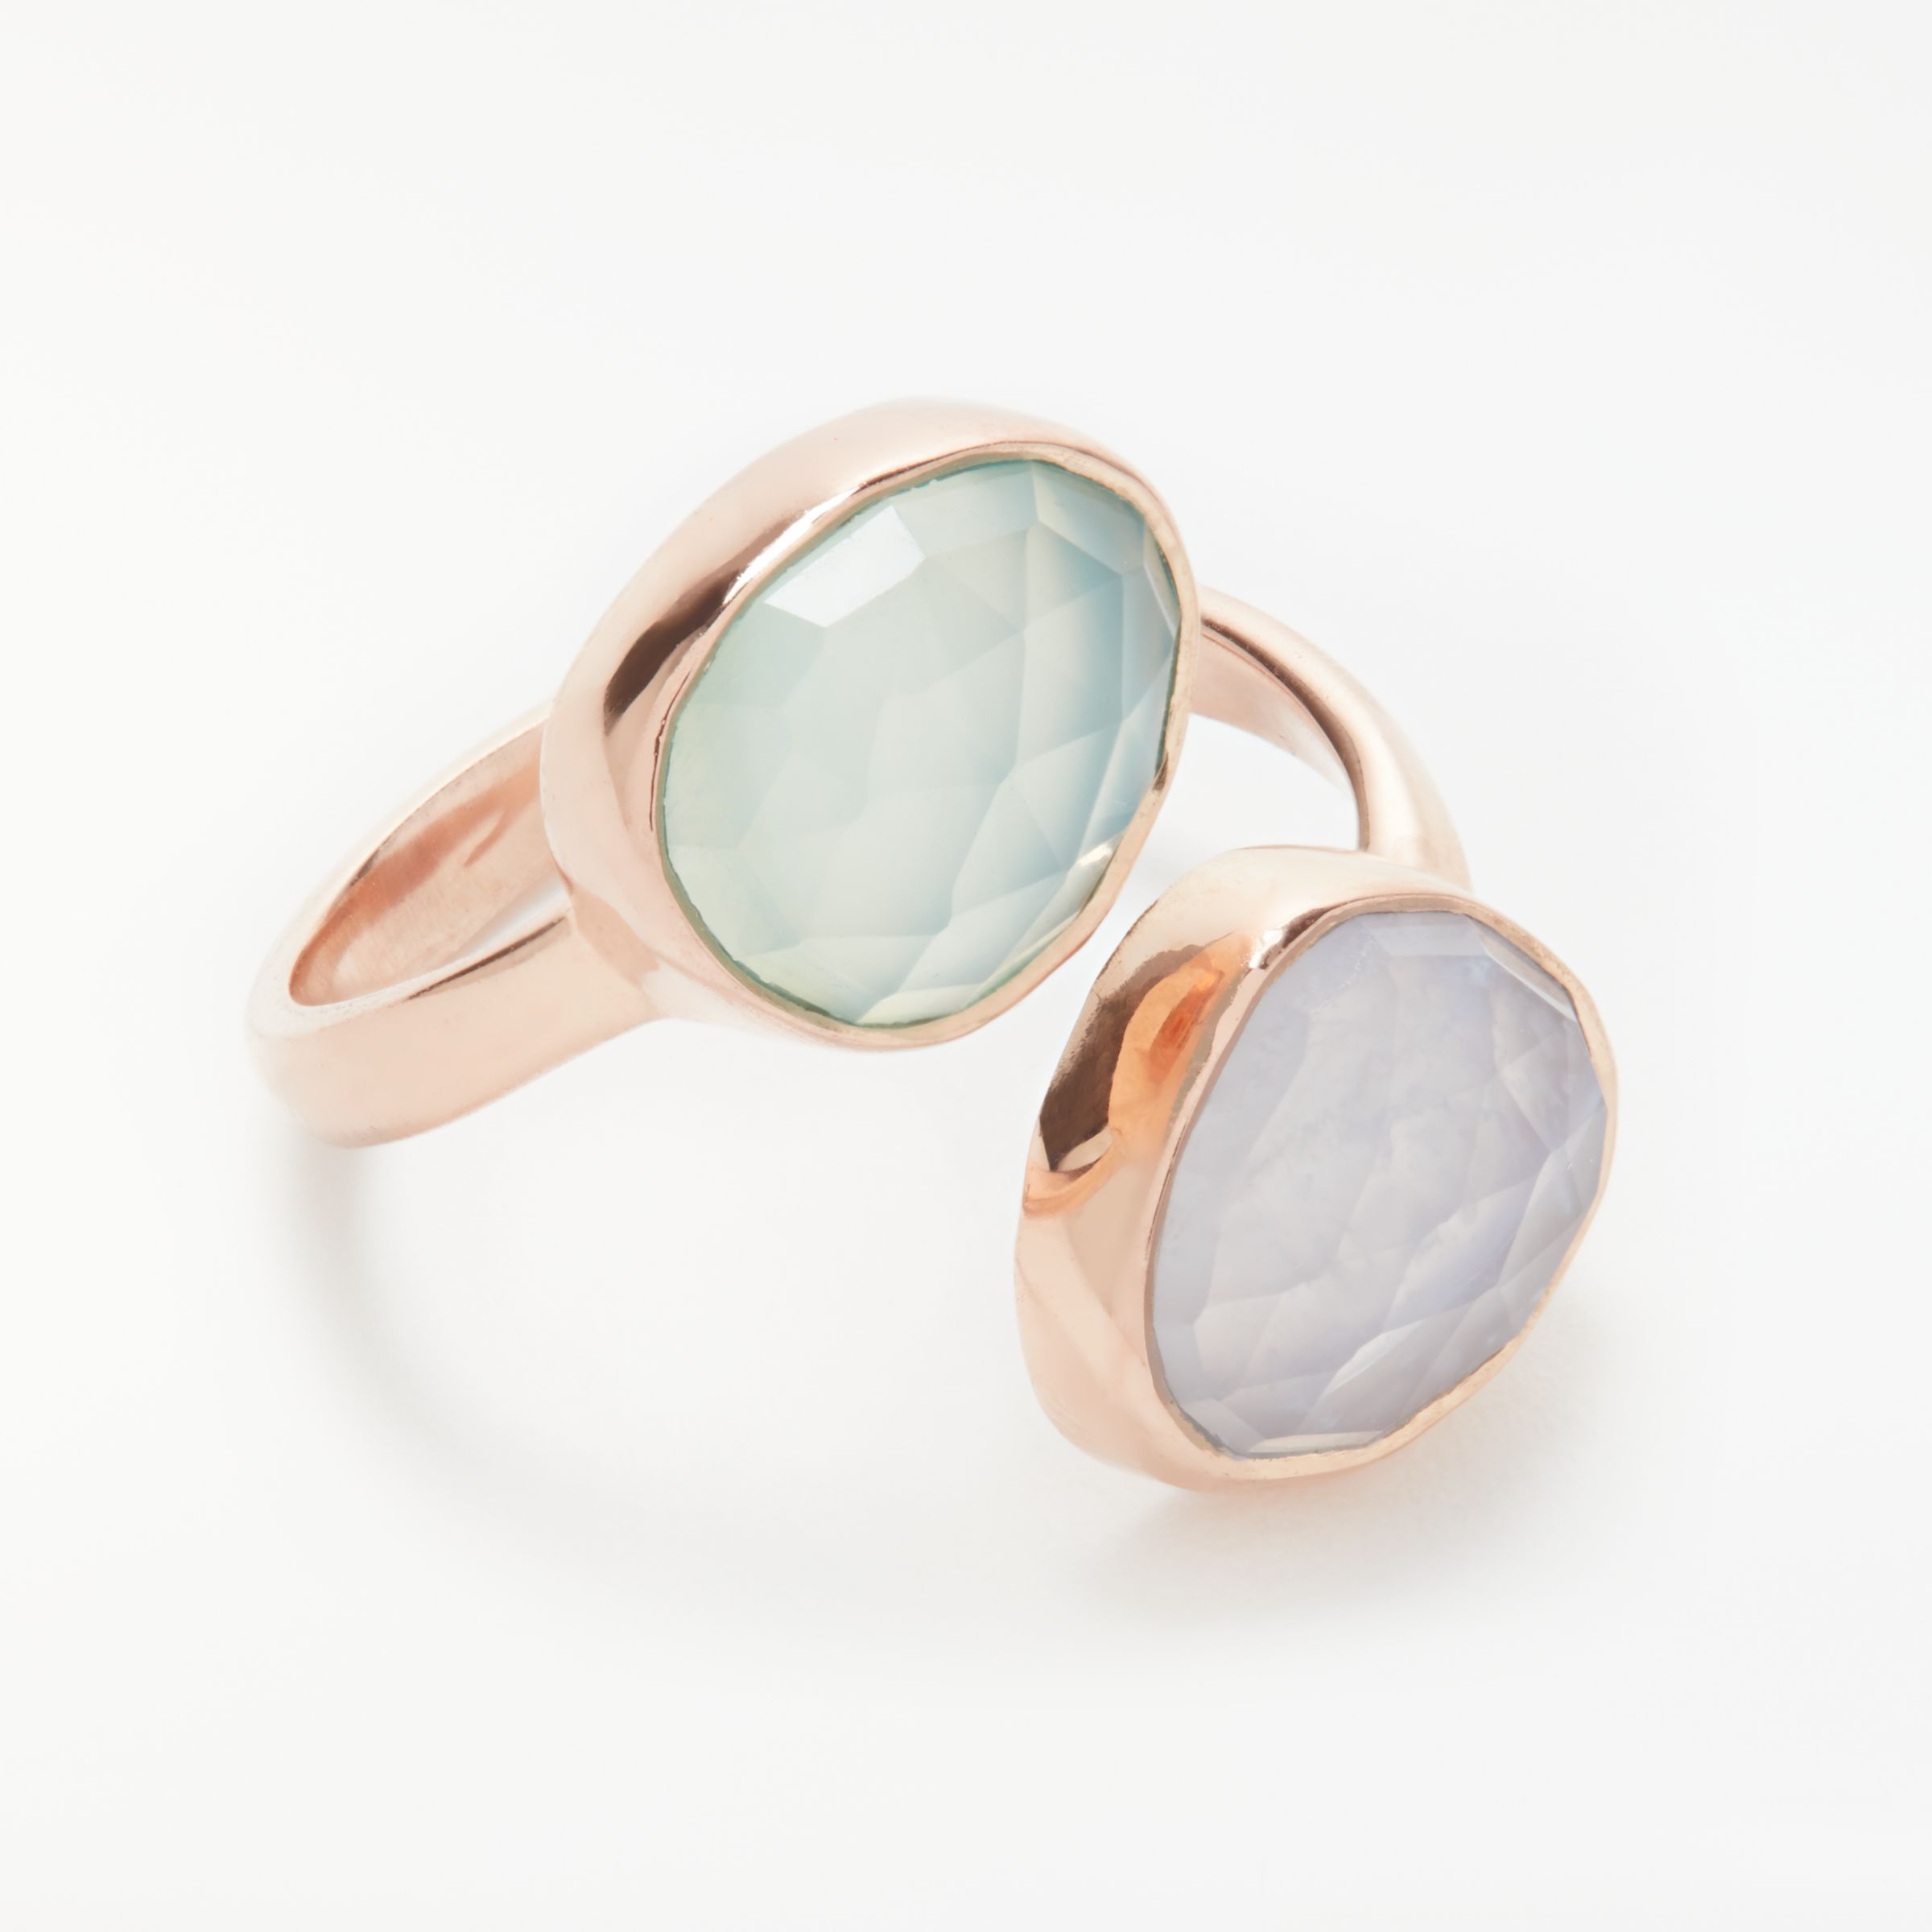 John Lewis Gemstones John Lewis Gemstones Aqua Chalcedony and Lace Agate Ring, Green/Pale Blue